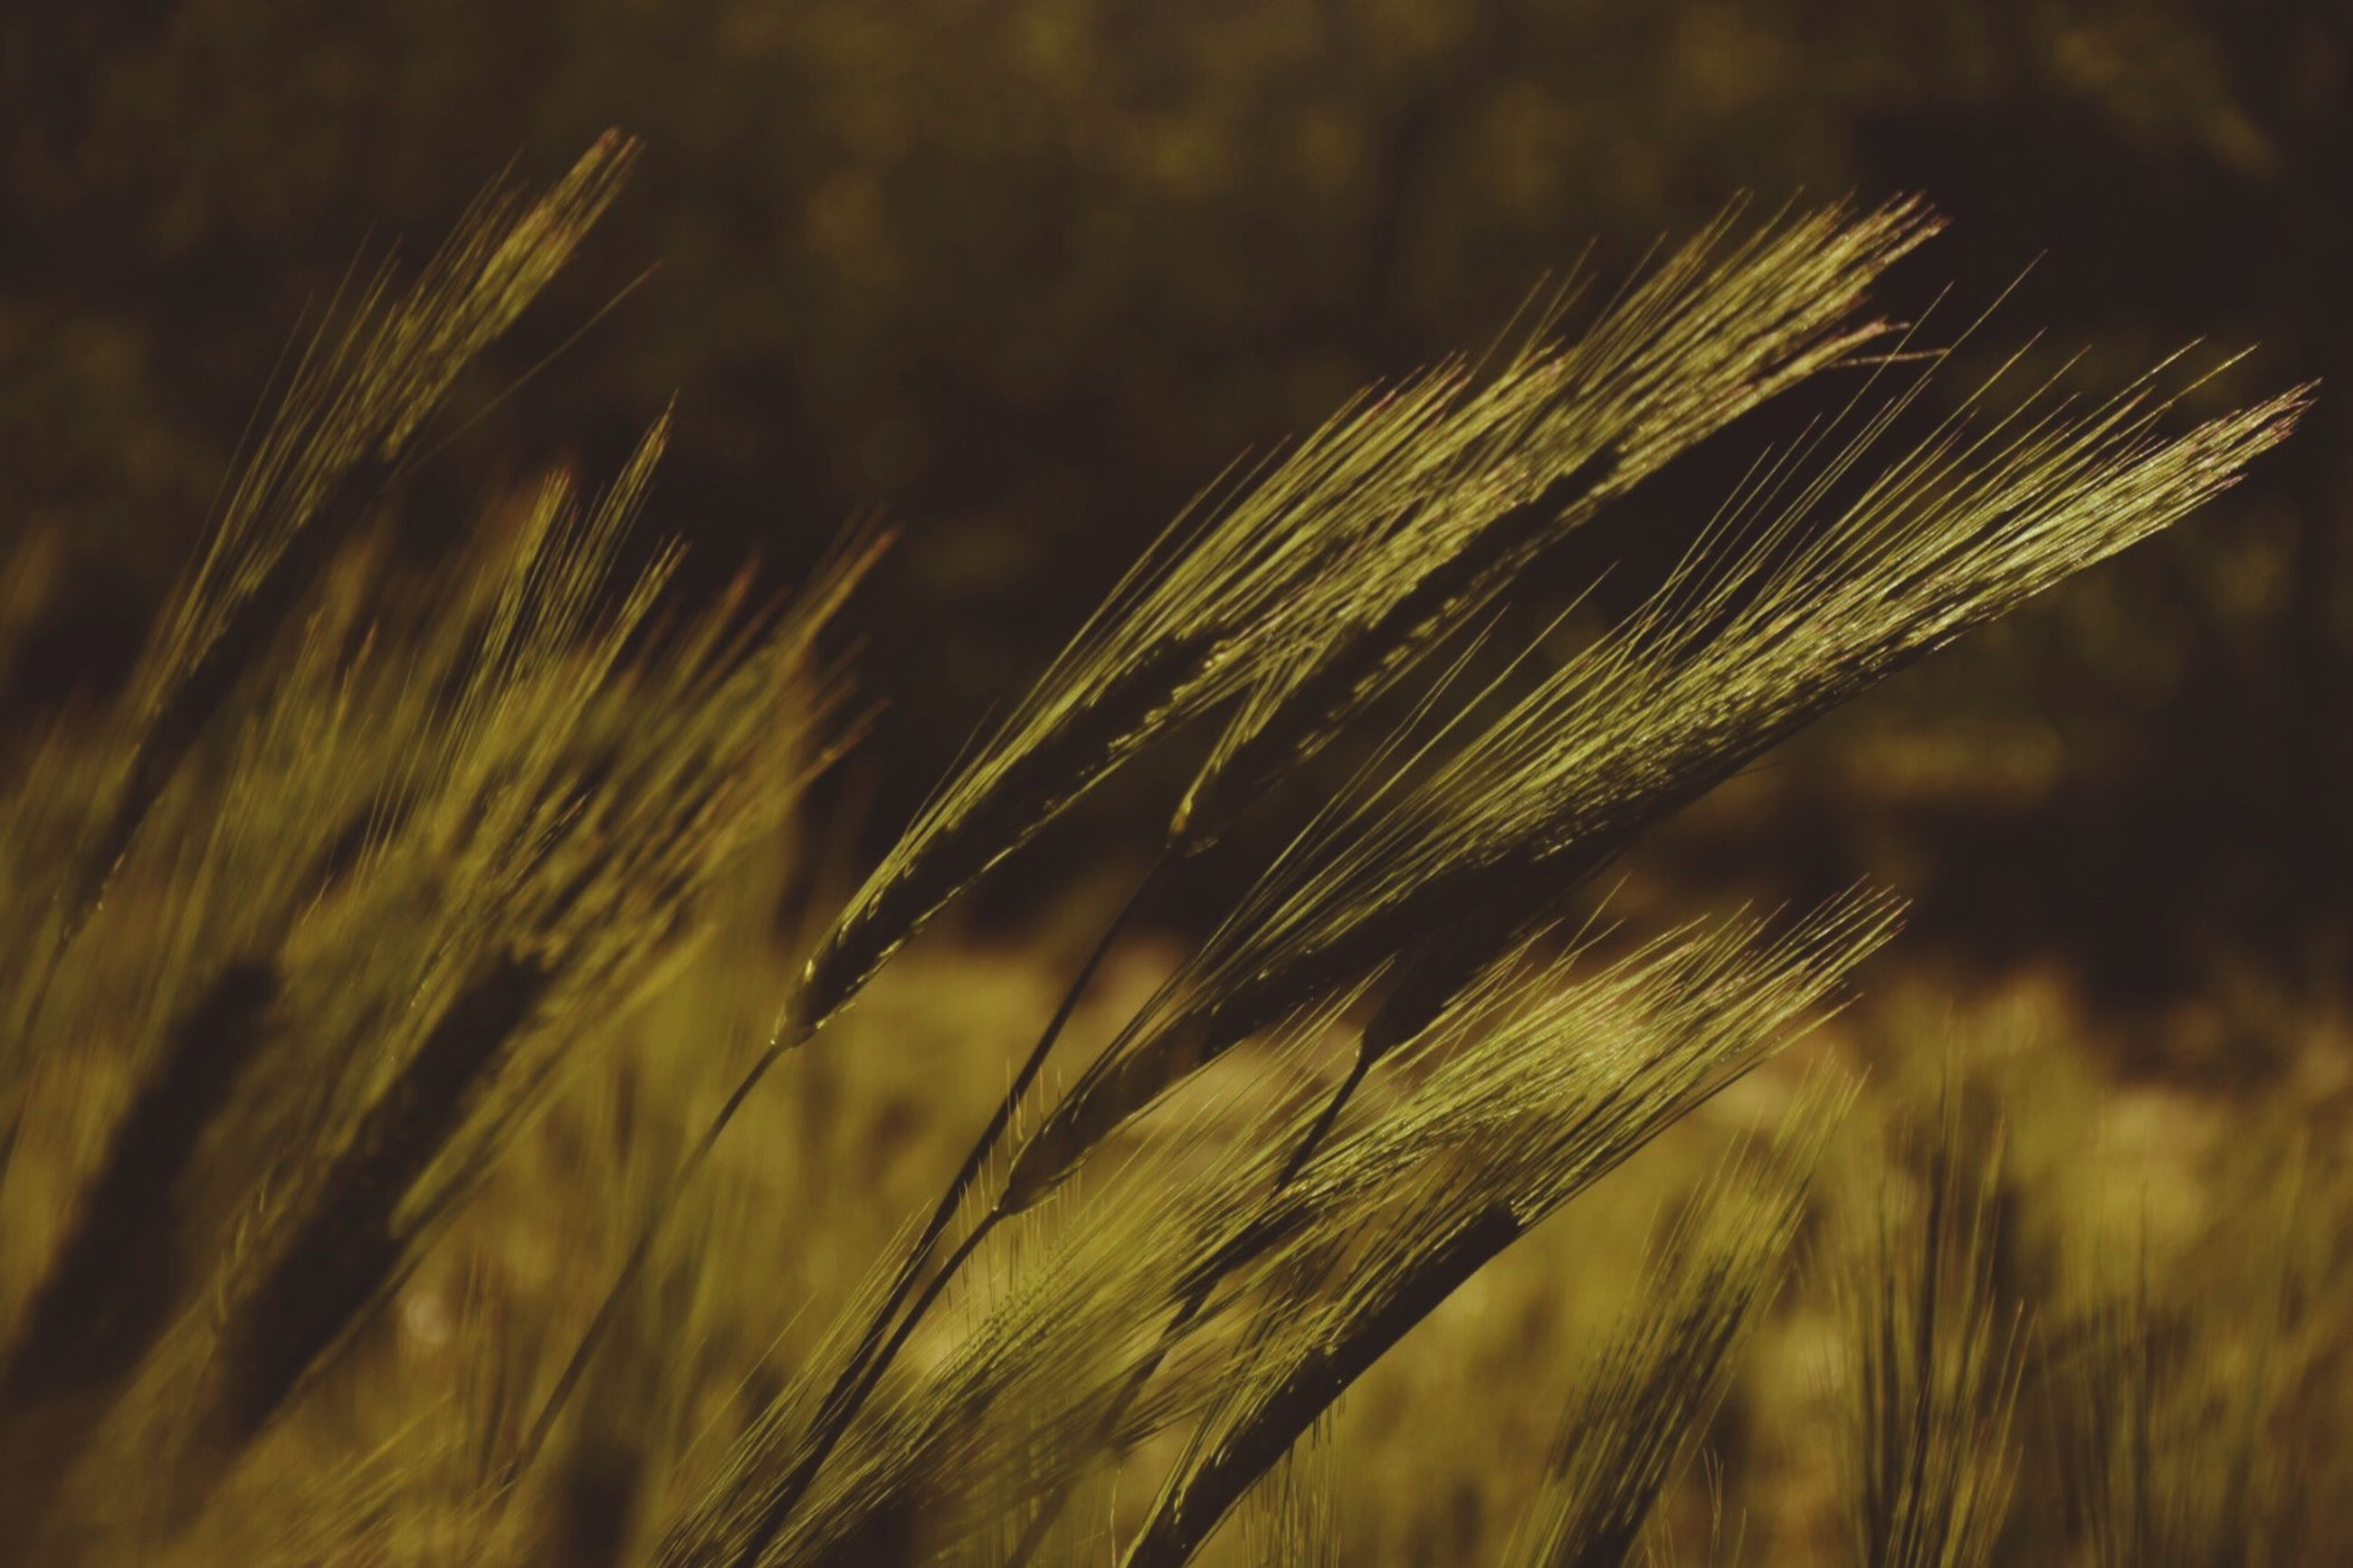 growth, plant, agriculture, crop, cereal plant, field, close-up, nature, focus on foreground, farm, land, rural scene, no people, wheat, beauty in nature, day, tranquility, ear of wheat, landscape, outdoors, stalk